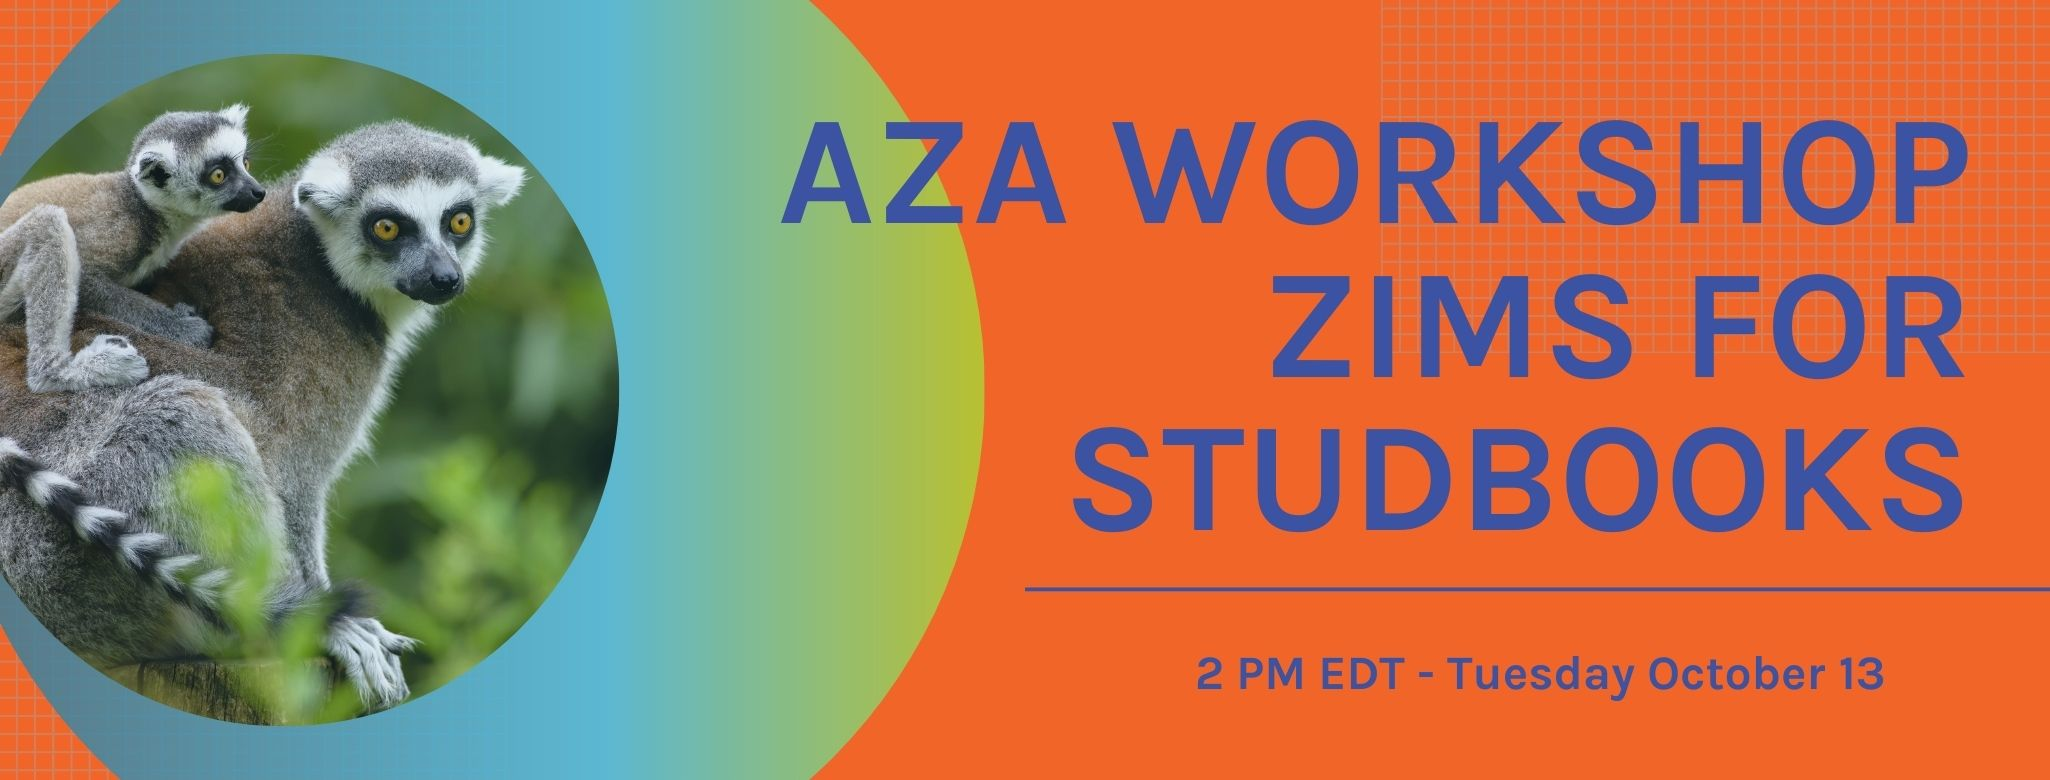 AZA Workshop: ZIMS For Studbooks / Tuesday October 13